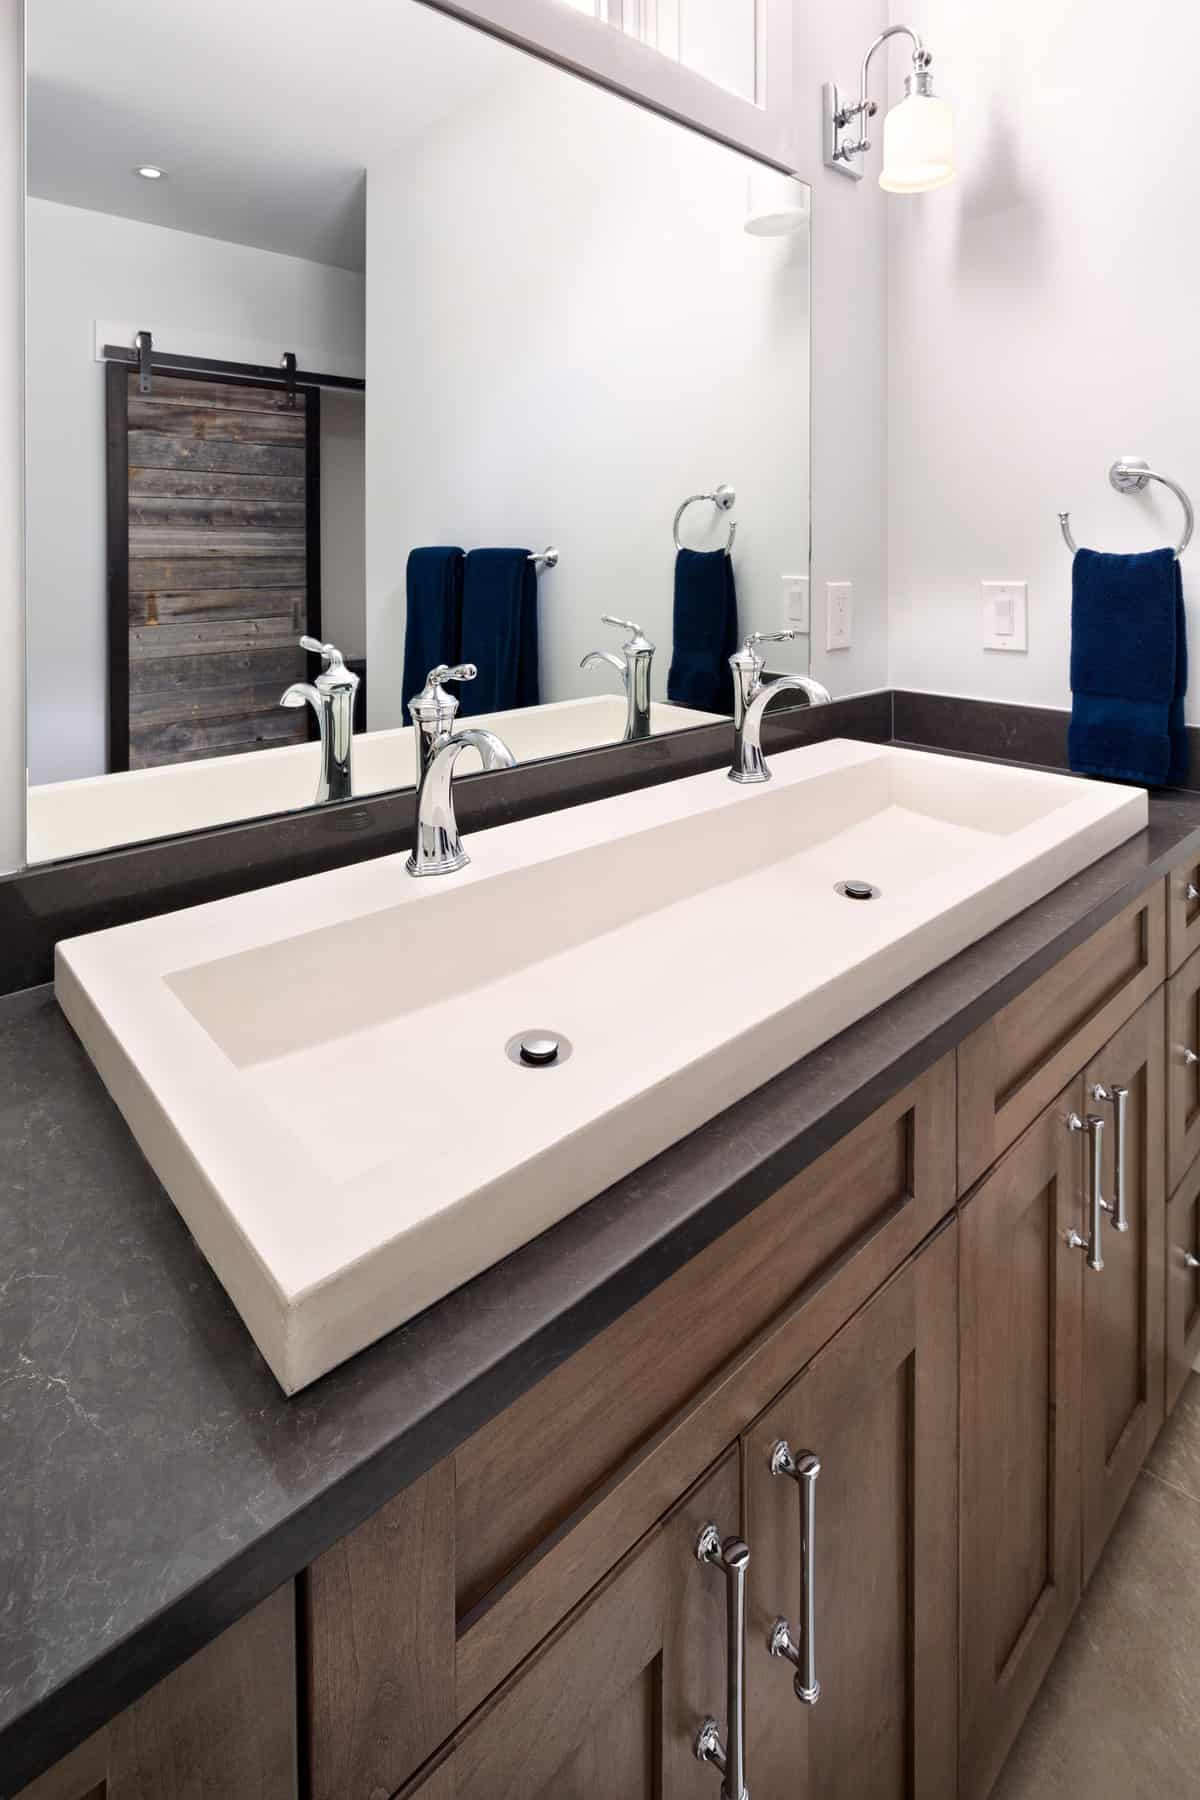 Boulder New Home Build - Training Paradise - Guest Bathroom Trough Sink